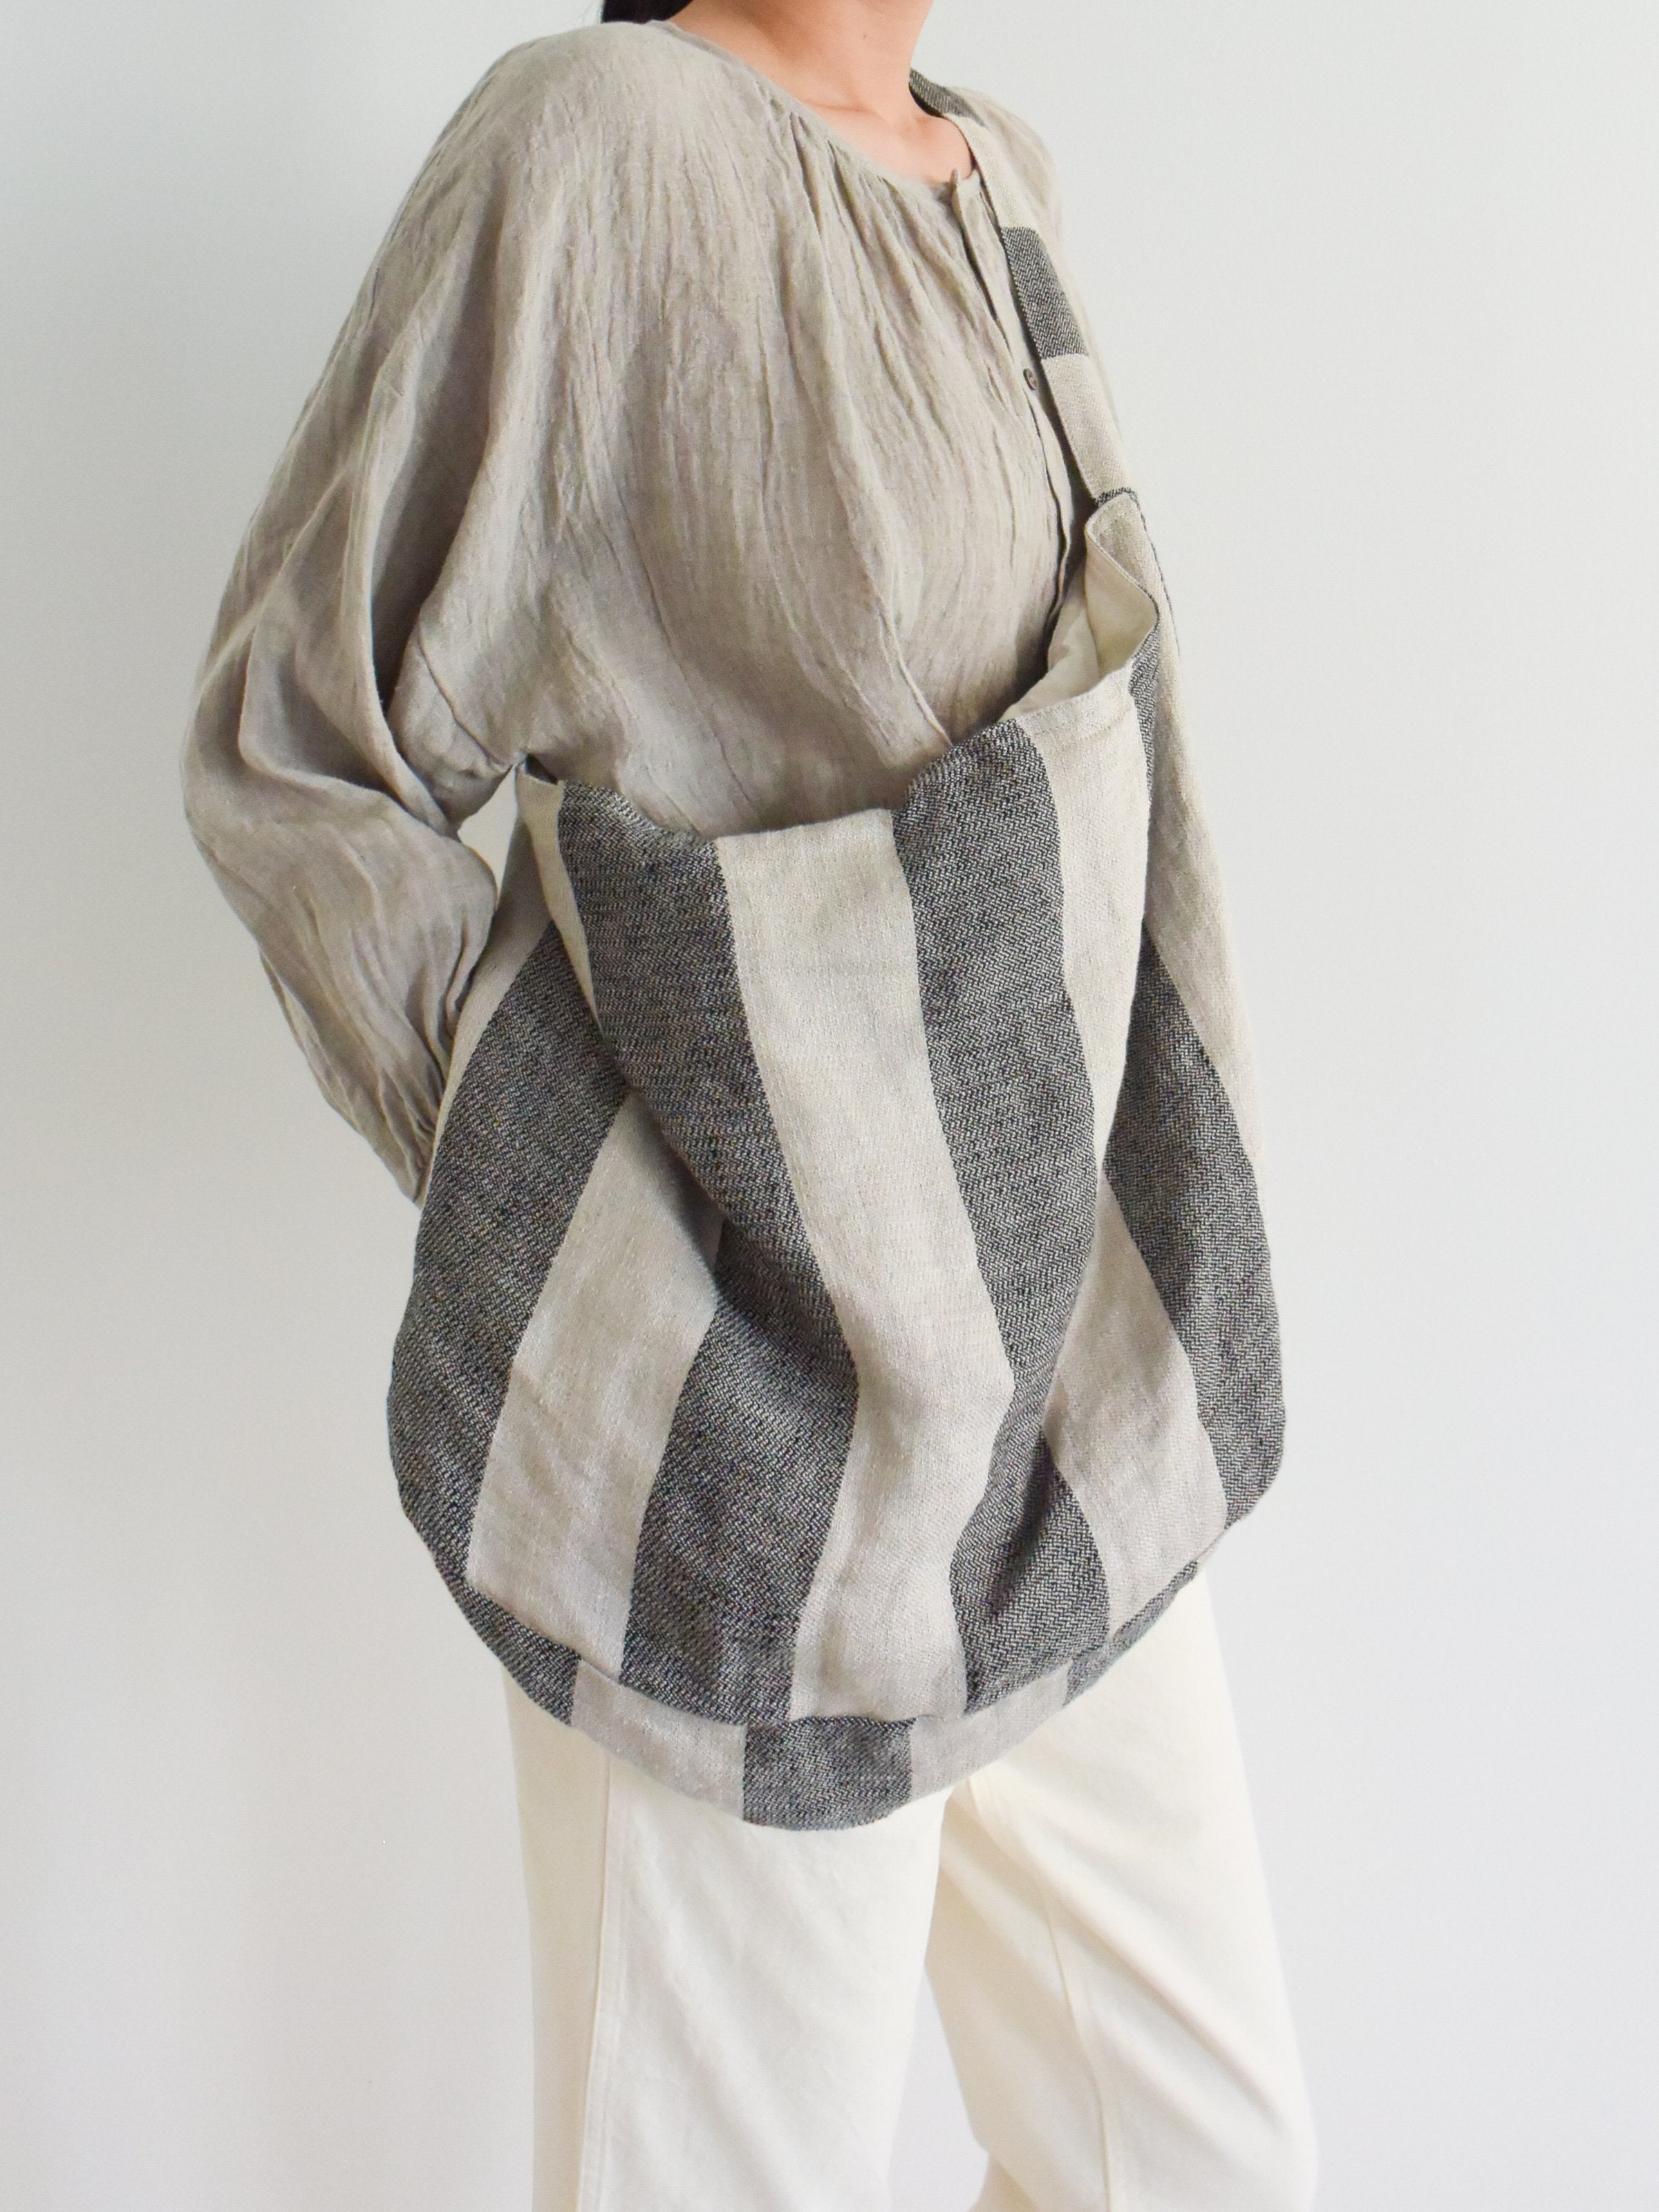 Namu Shop - Ichi Antiquites Striped Linen Two-Way Bag